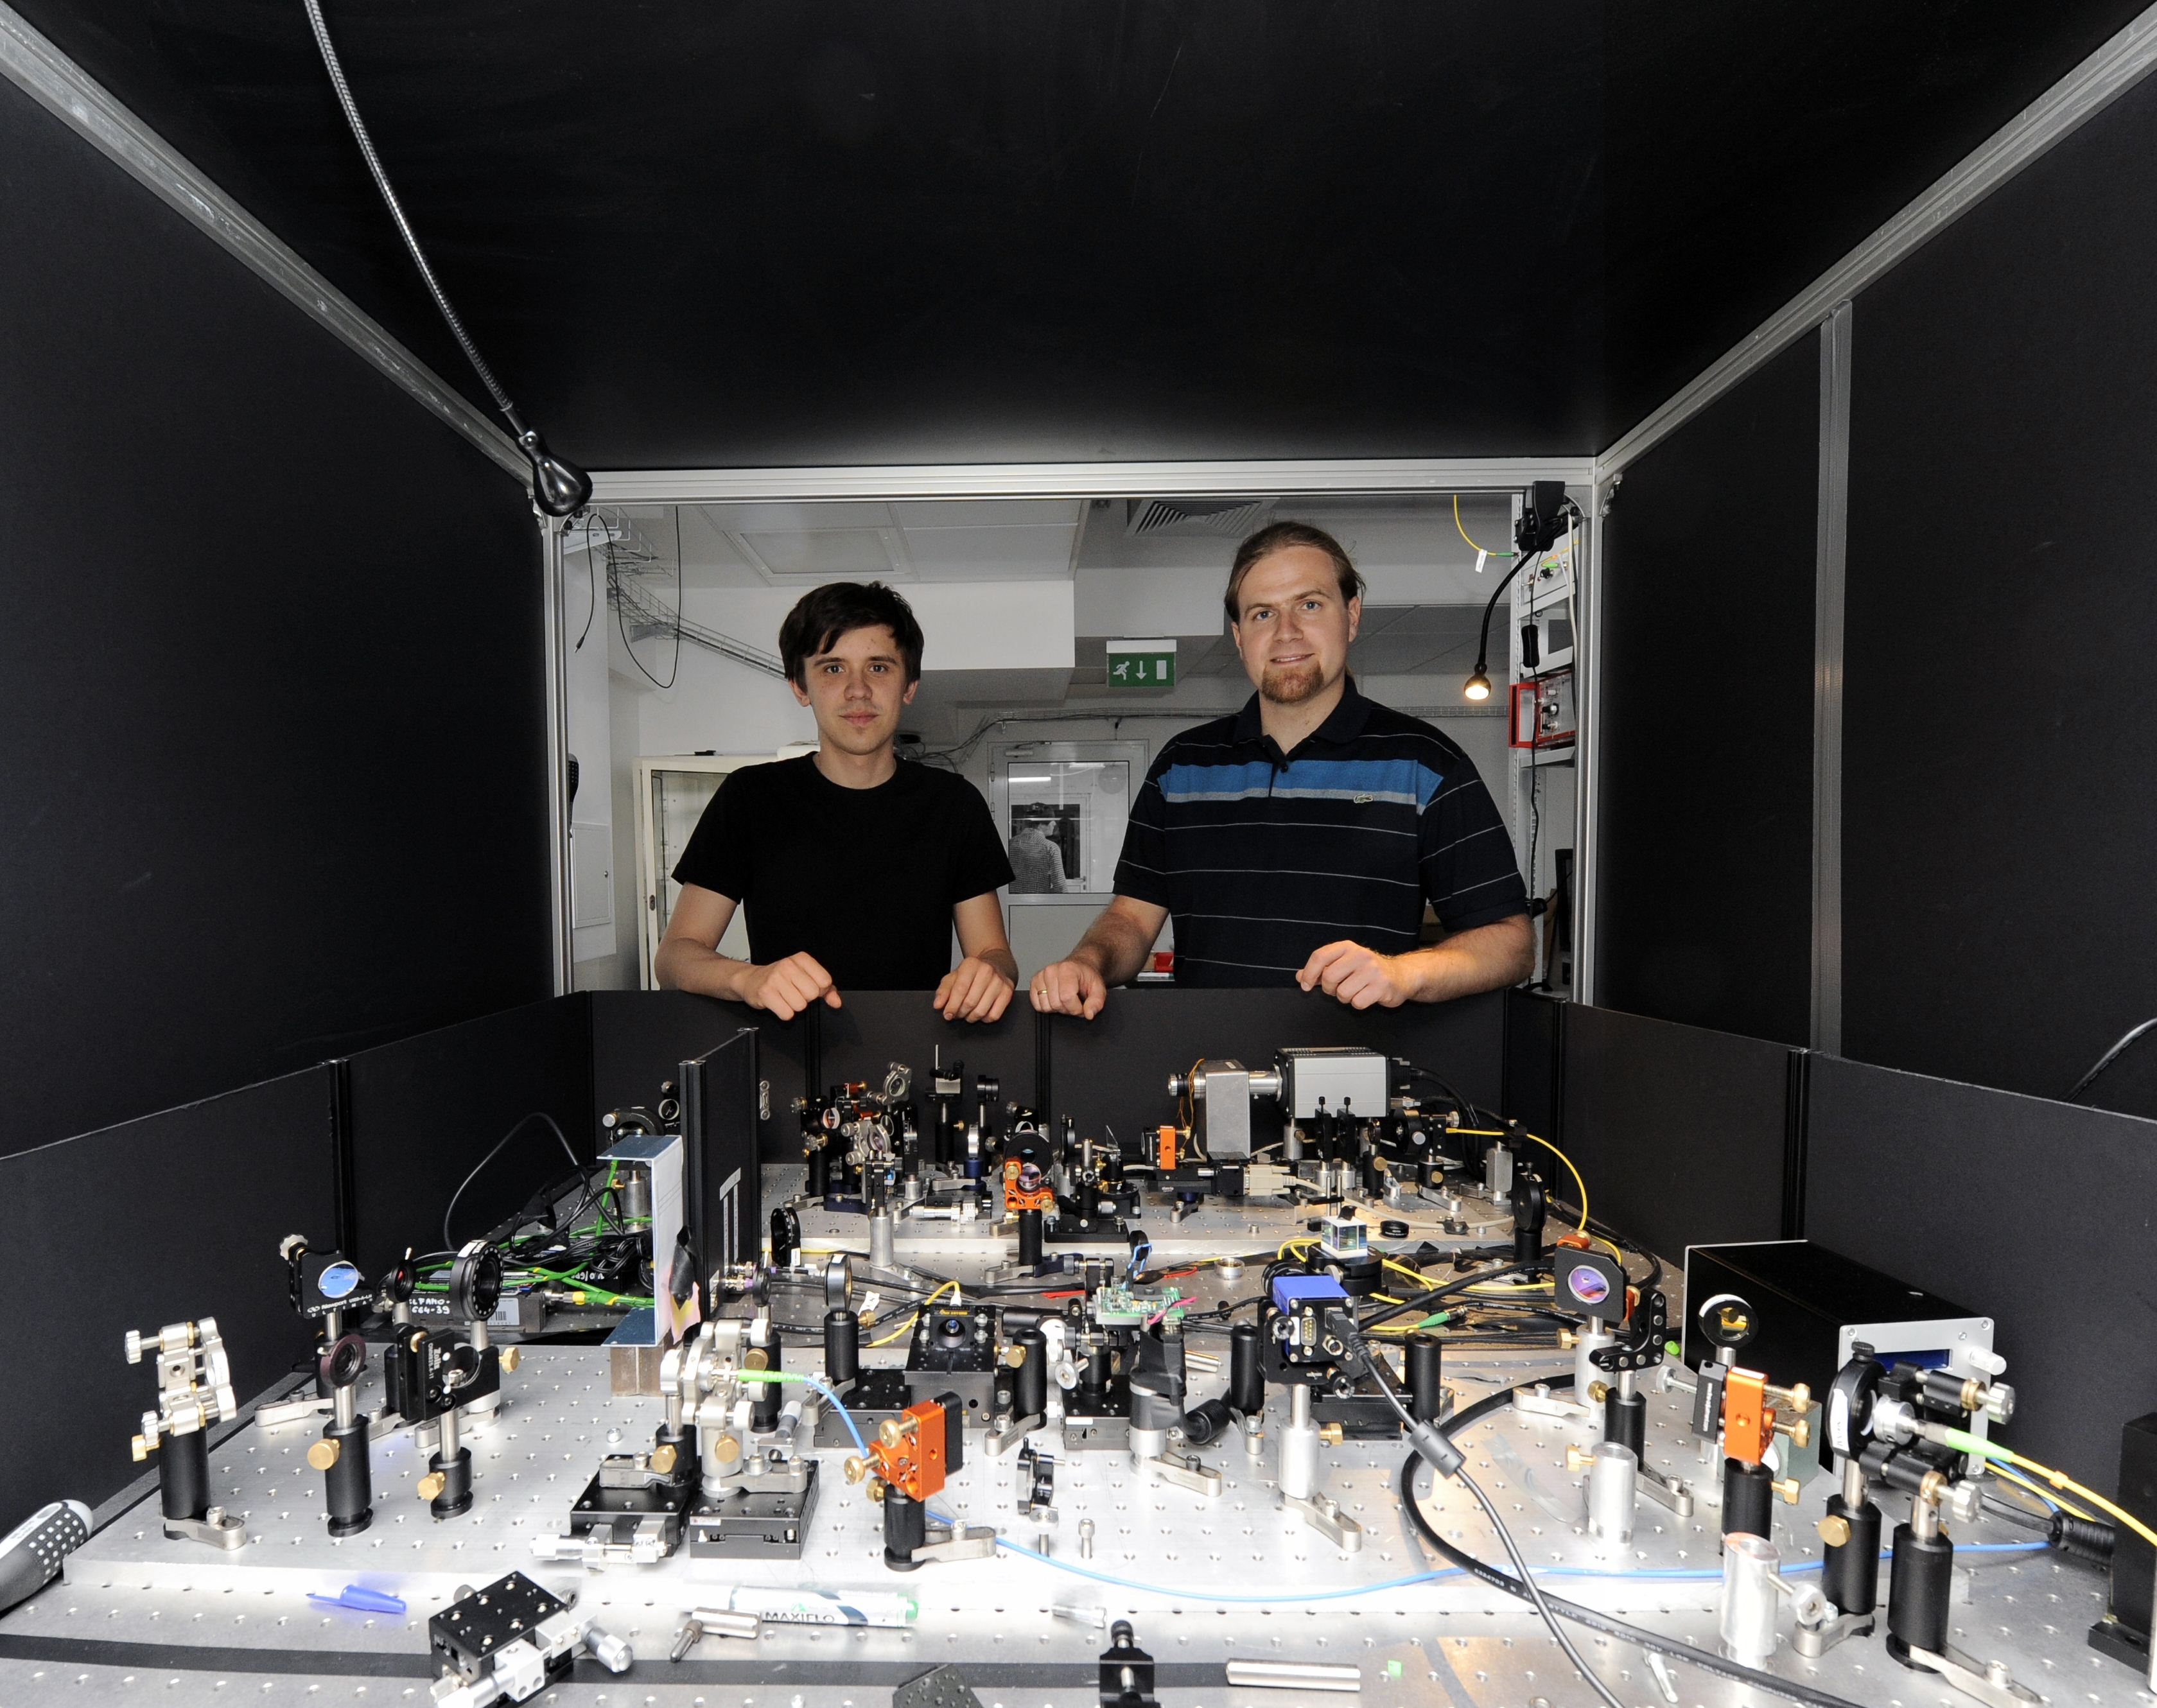 The birth of quantum holography: Making holograms of single